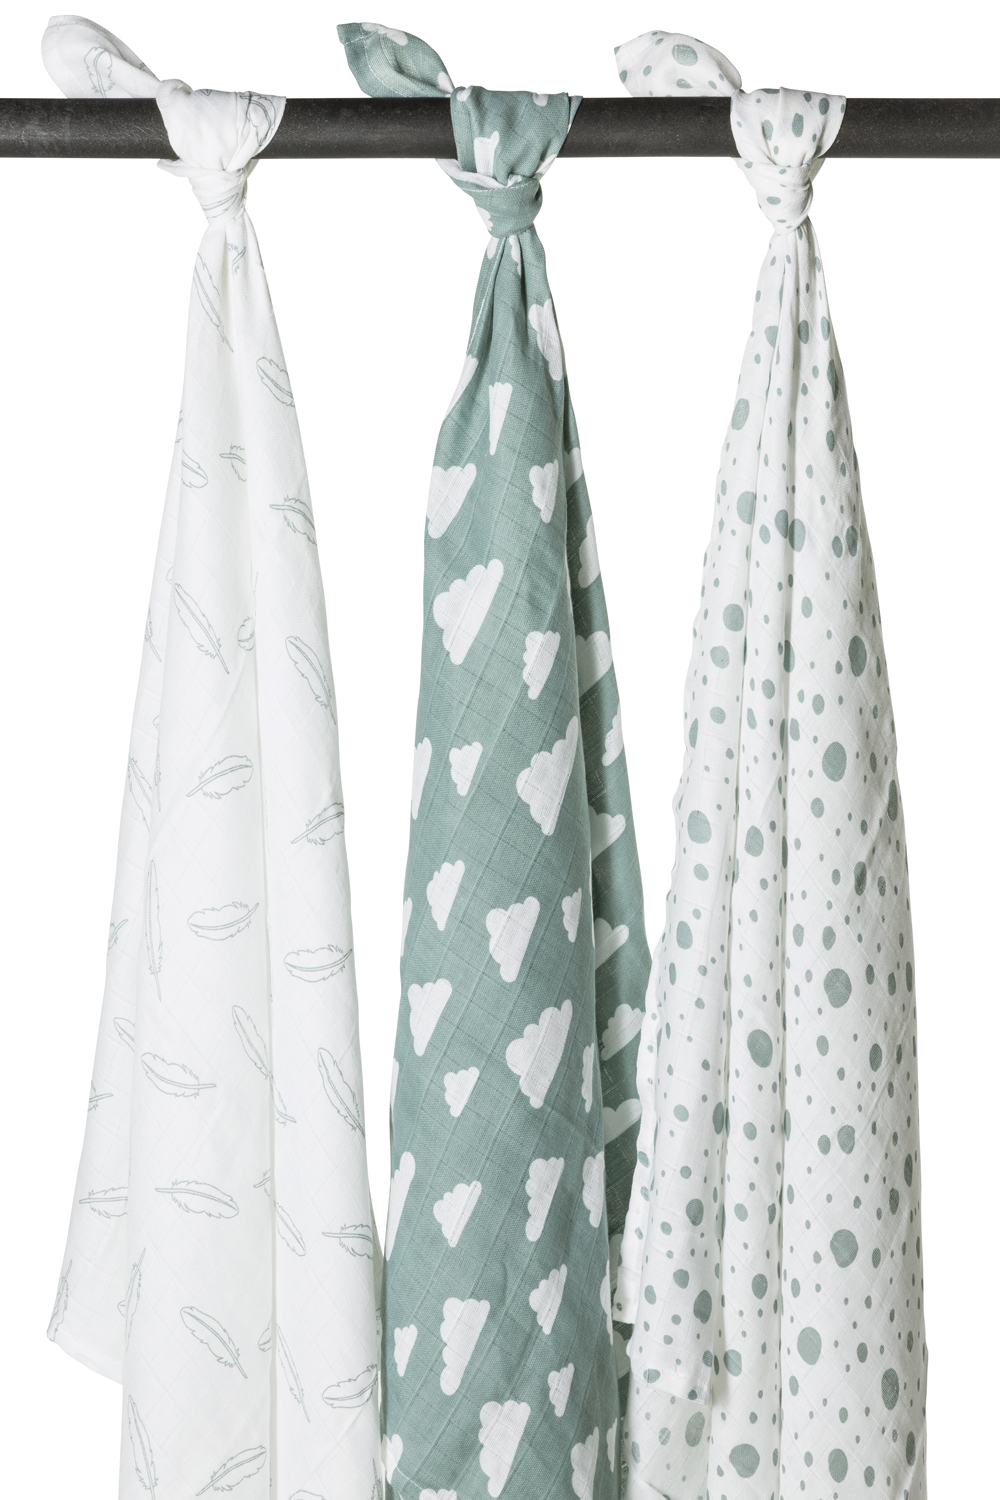 Musselin Swaddles 3-Pack Feathers-Clouds-Dots - Stone Green/Weiß - 120x120cm